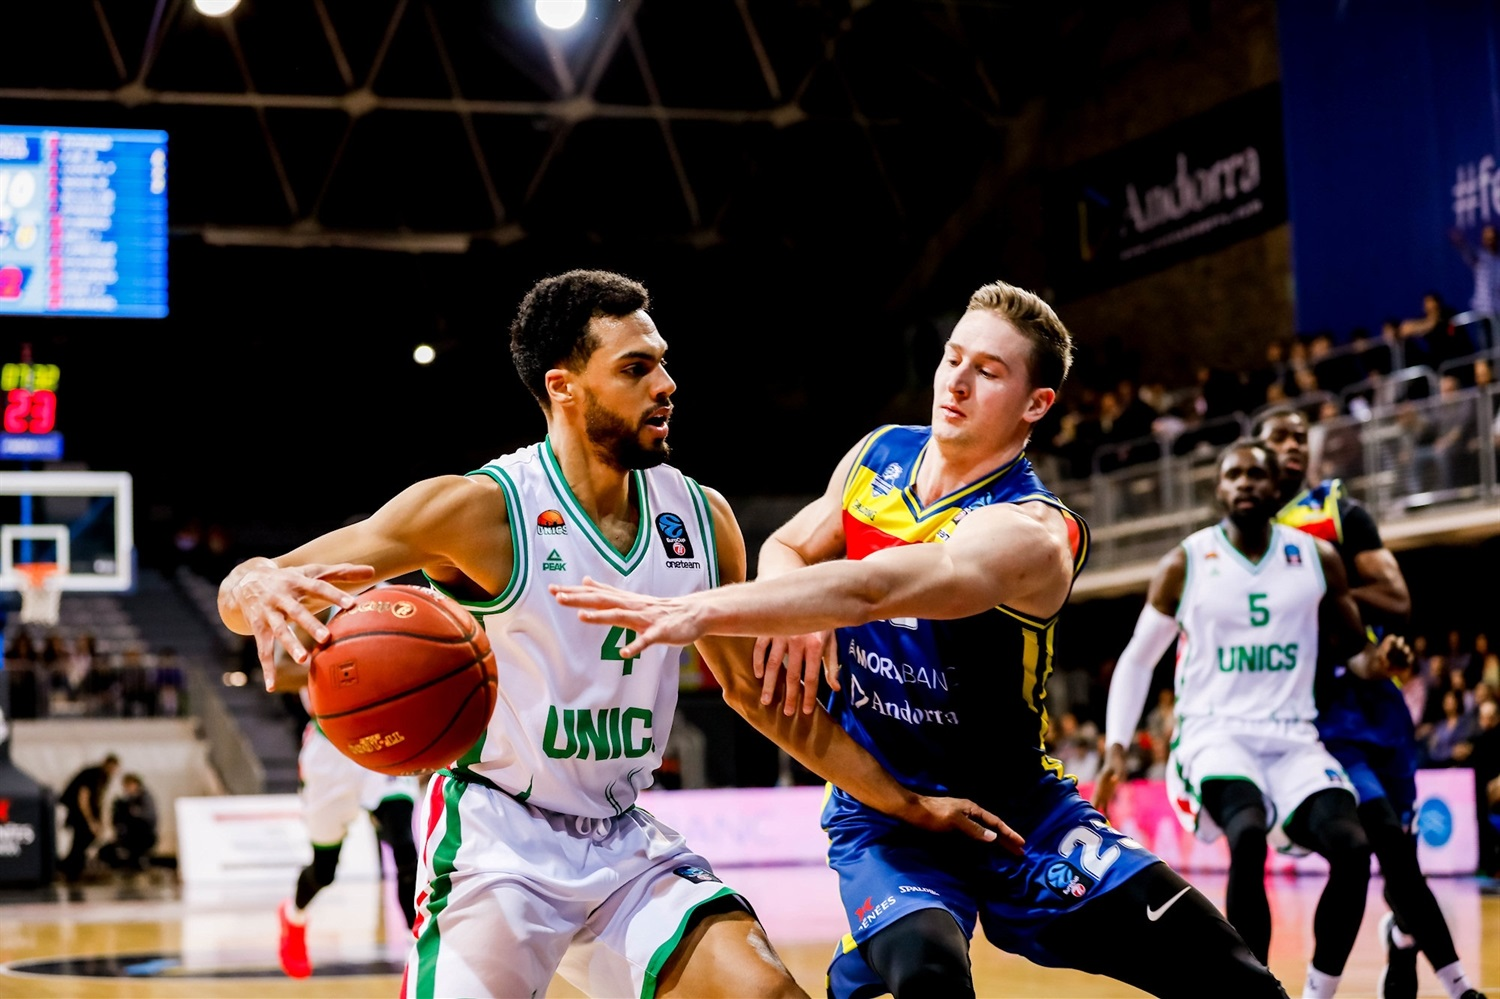 Trent Lockett - UNICS Kazan (photo Marti Imatge - Andorra) - EC18